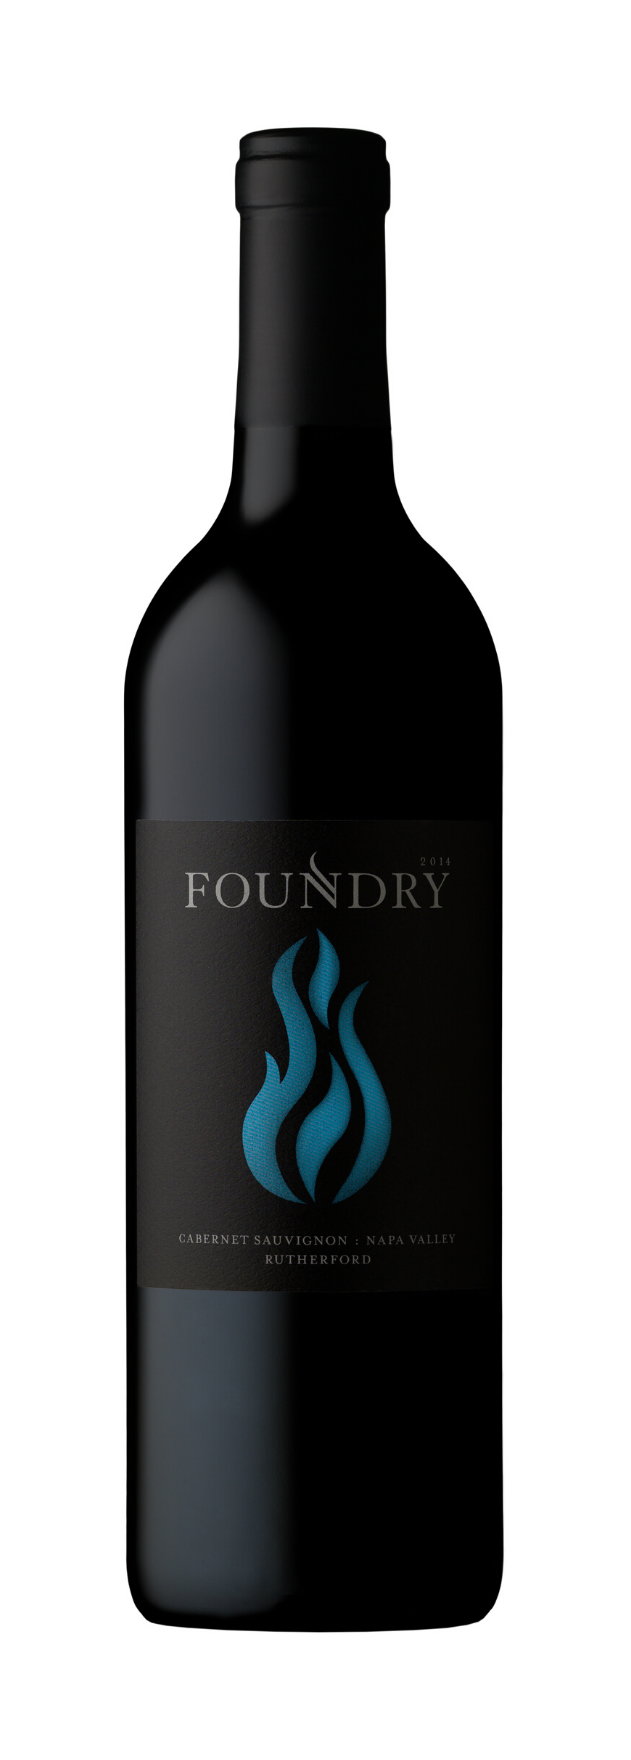 2014 Cabernet Sauvignon Rutherford